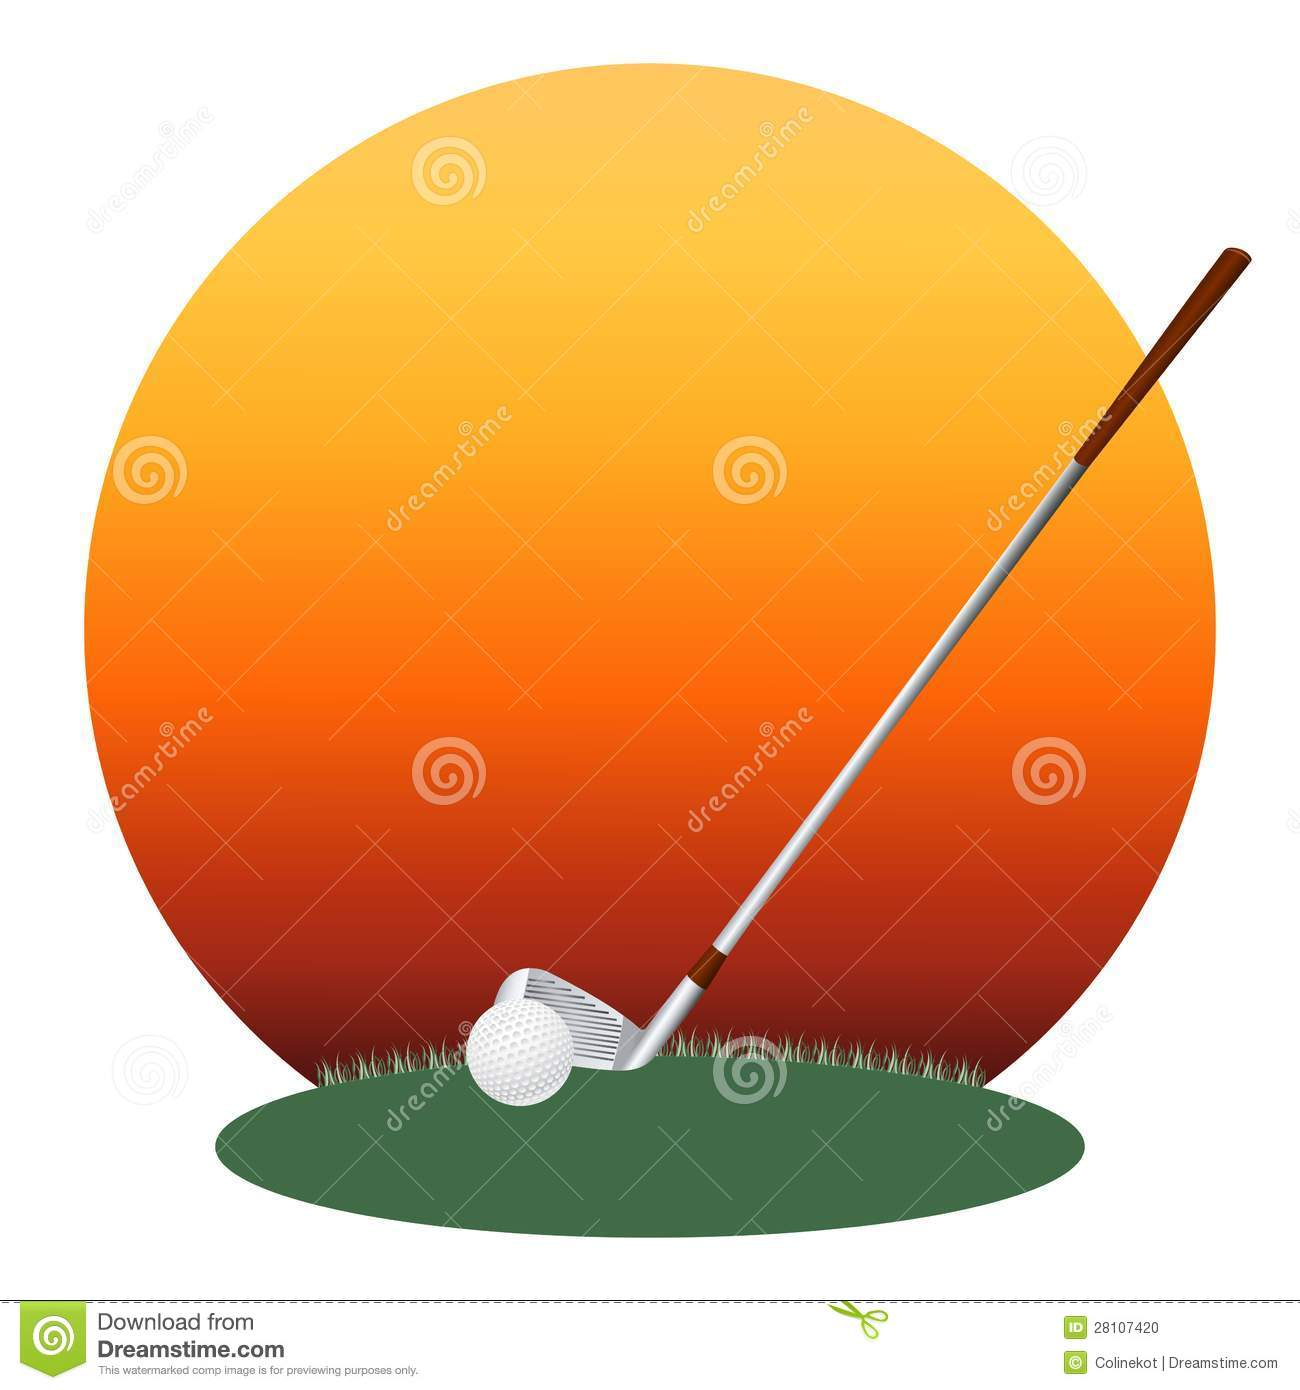 Golf club and a ball